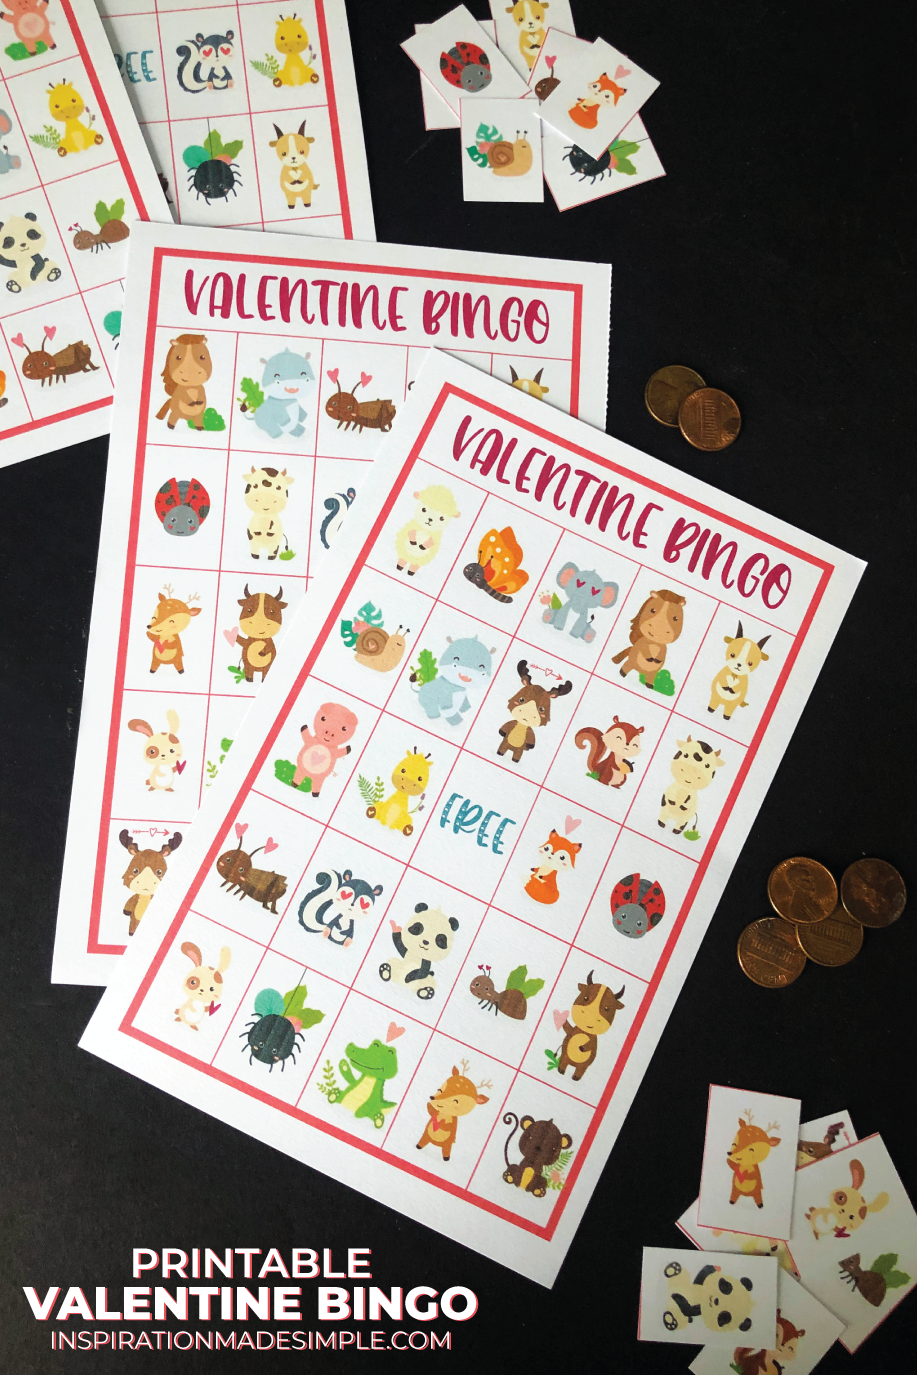 Printable Valentine Bingo Game - great for small groups, family game night or a classroom activity!